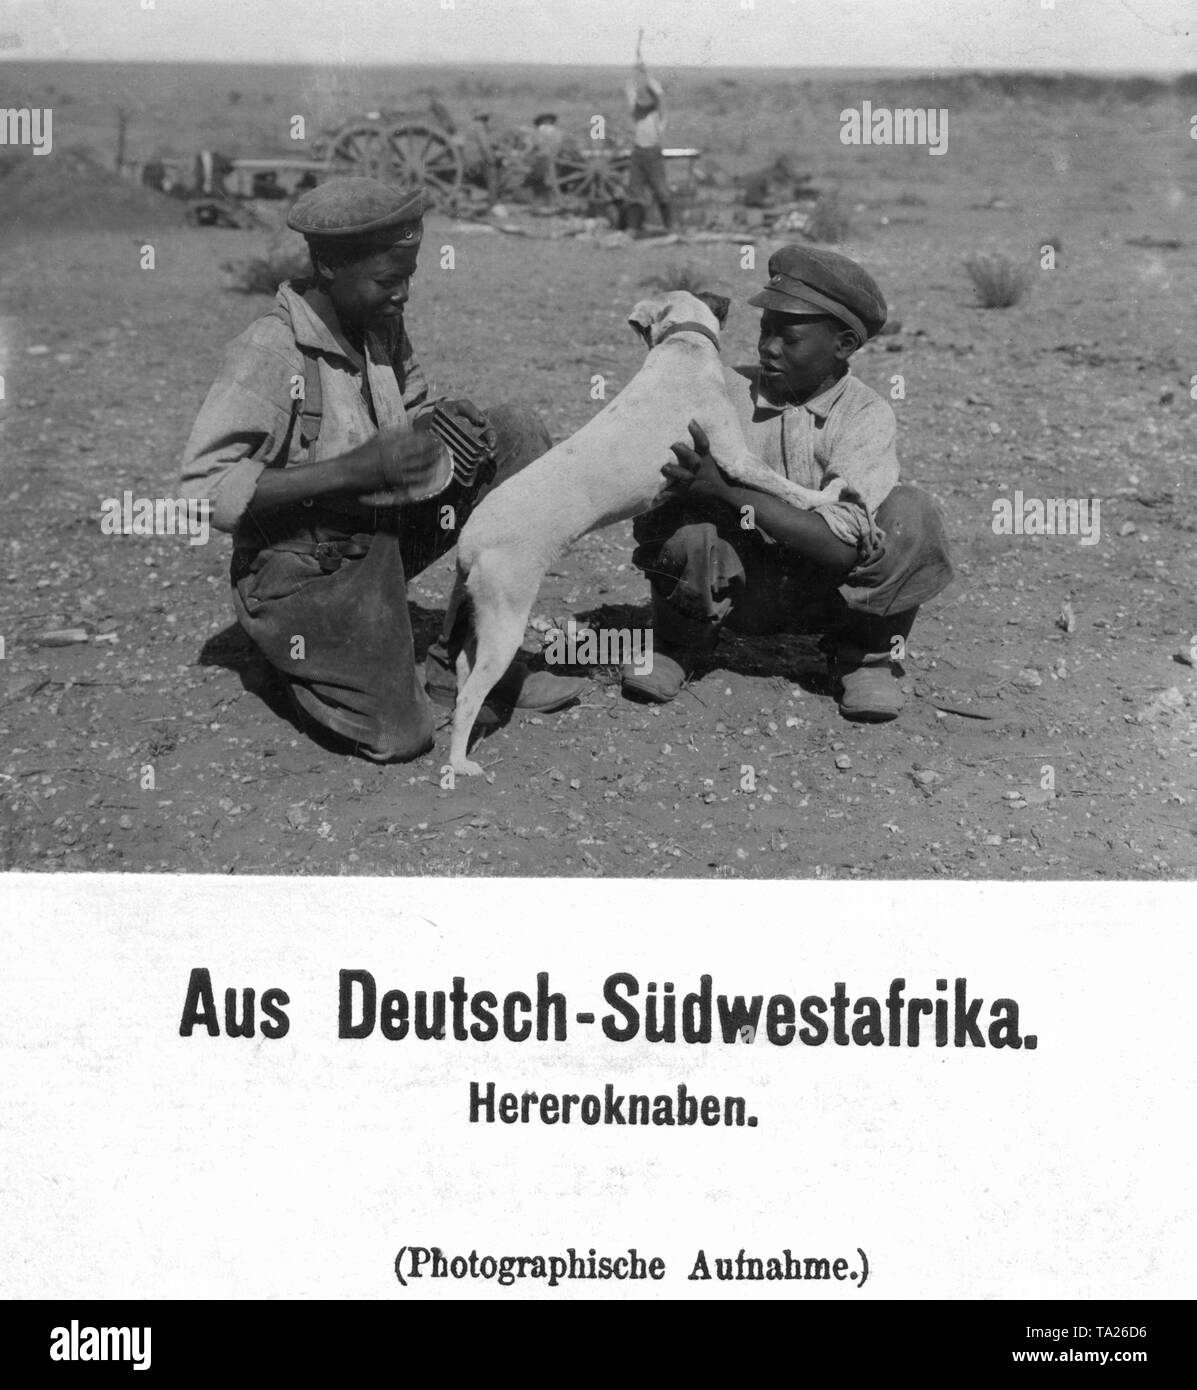 Two boys of the Herero in European clothes play with a dog in the open field. In the background men are working. In German Southwest Africa (undated photo). Stock Photo